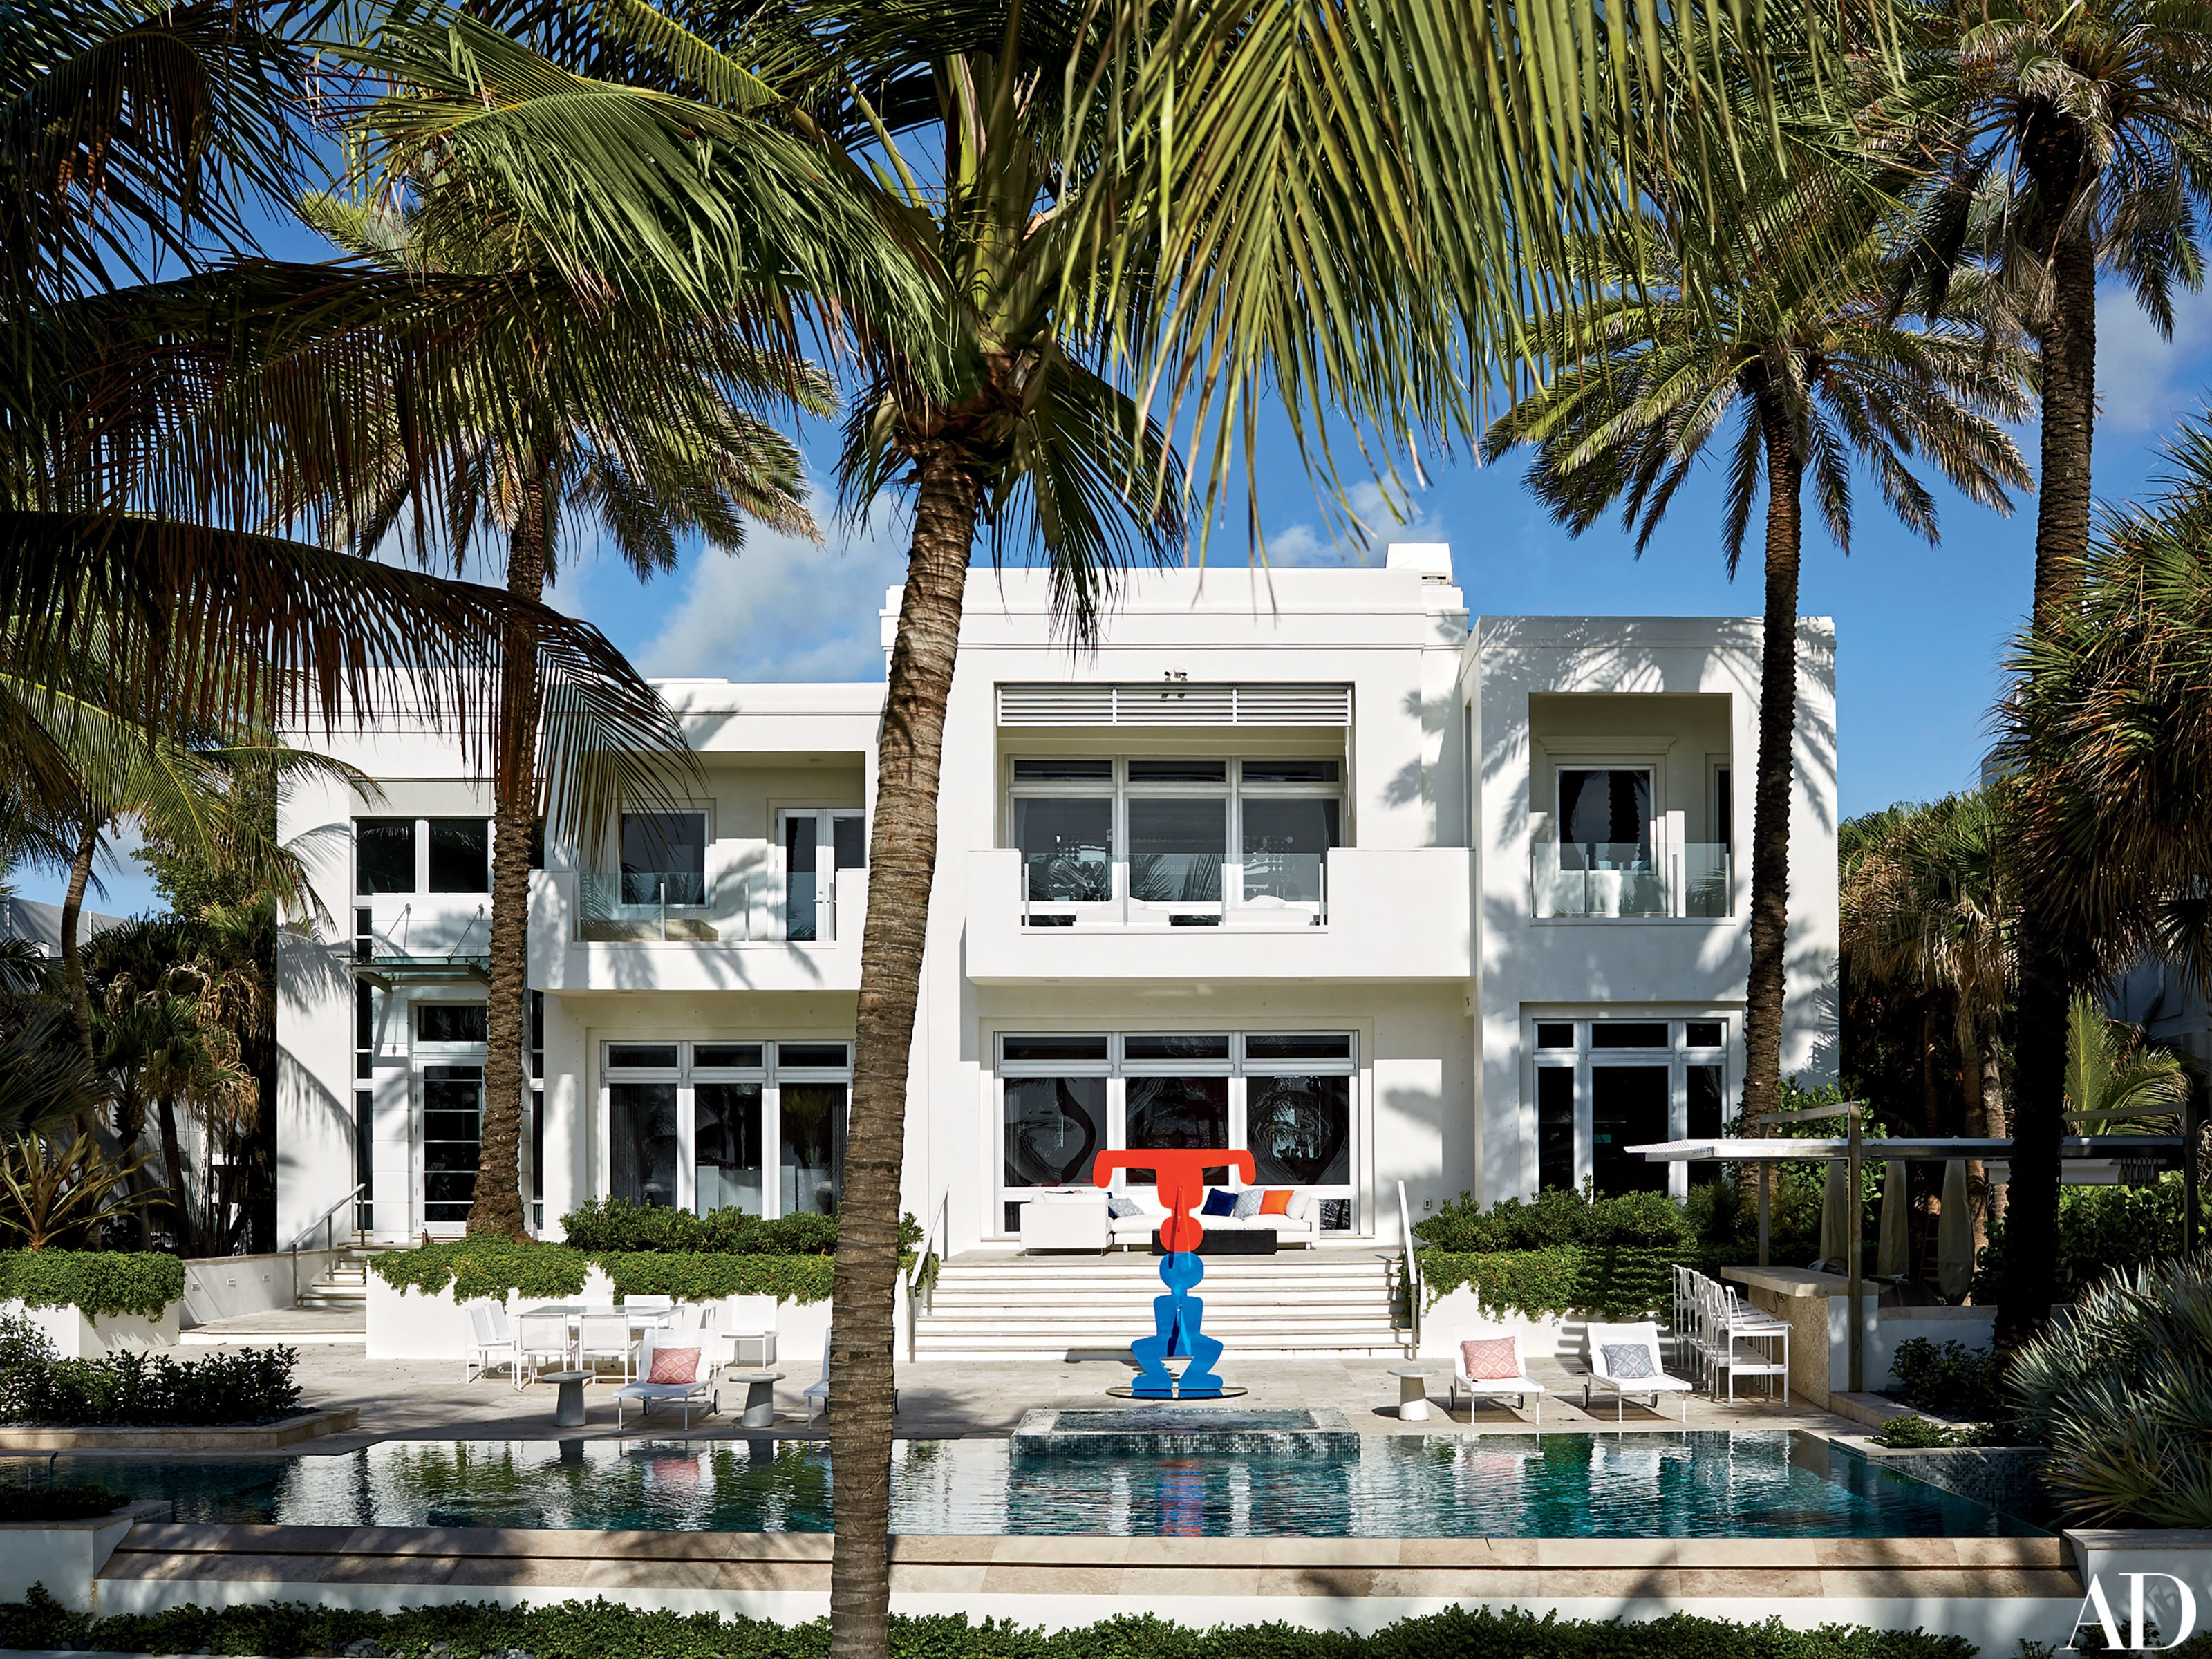 Tommy Hilfiger Florida Mansion is Definitely Something to Look At tommy hilfiger florida mansion Tommy Hilfiger Florida Mansion is Definitely Something to Look At Tommy Hilfiger Florida Mansion is Definitely Something to Look At 8